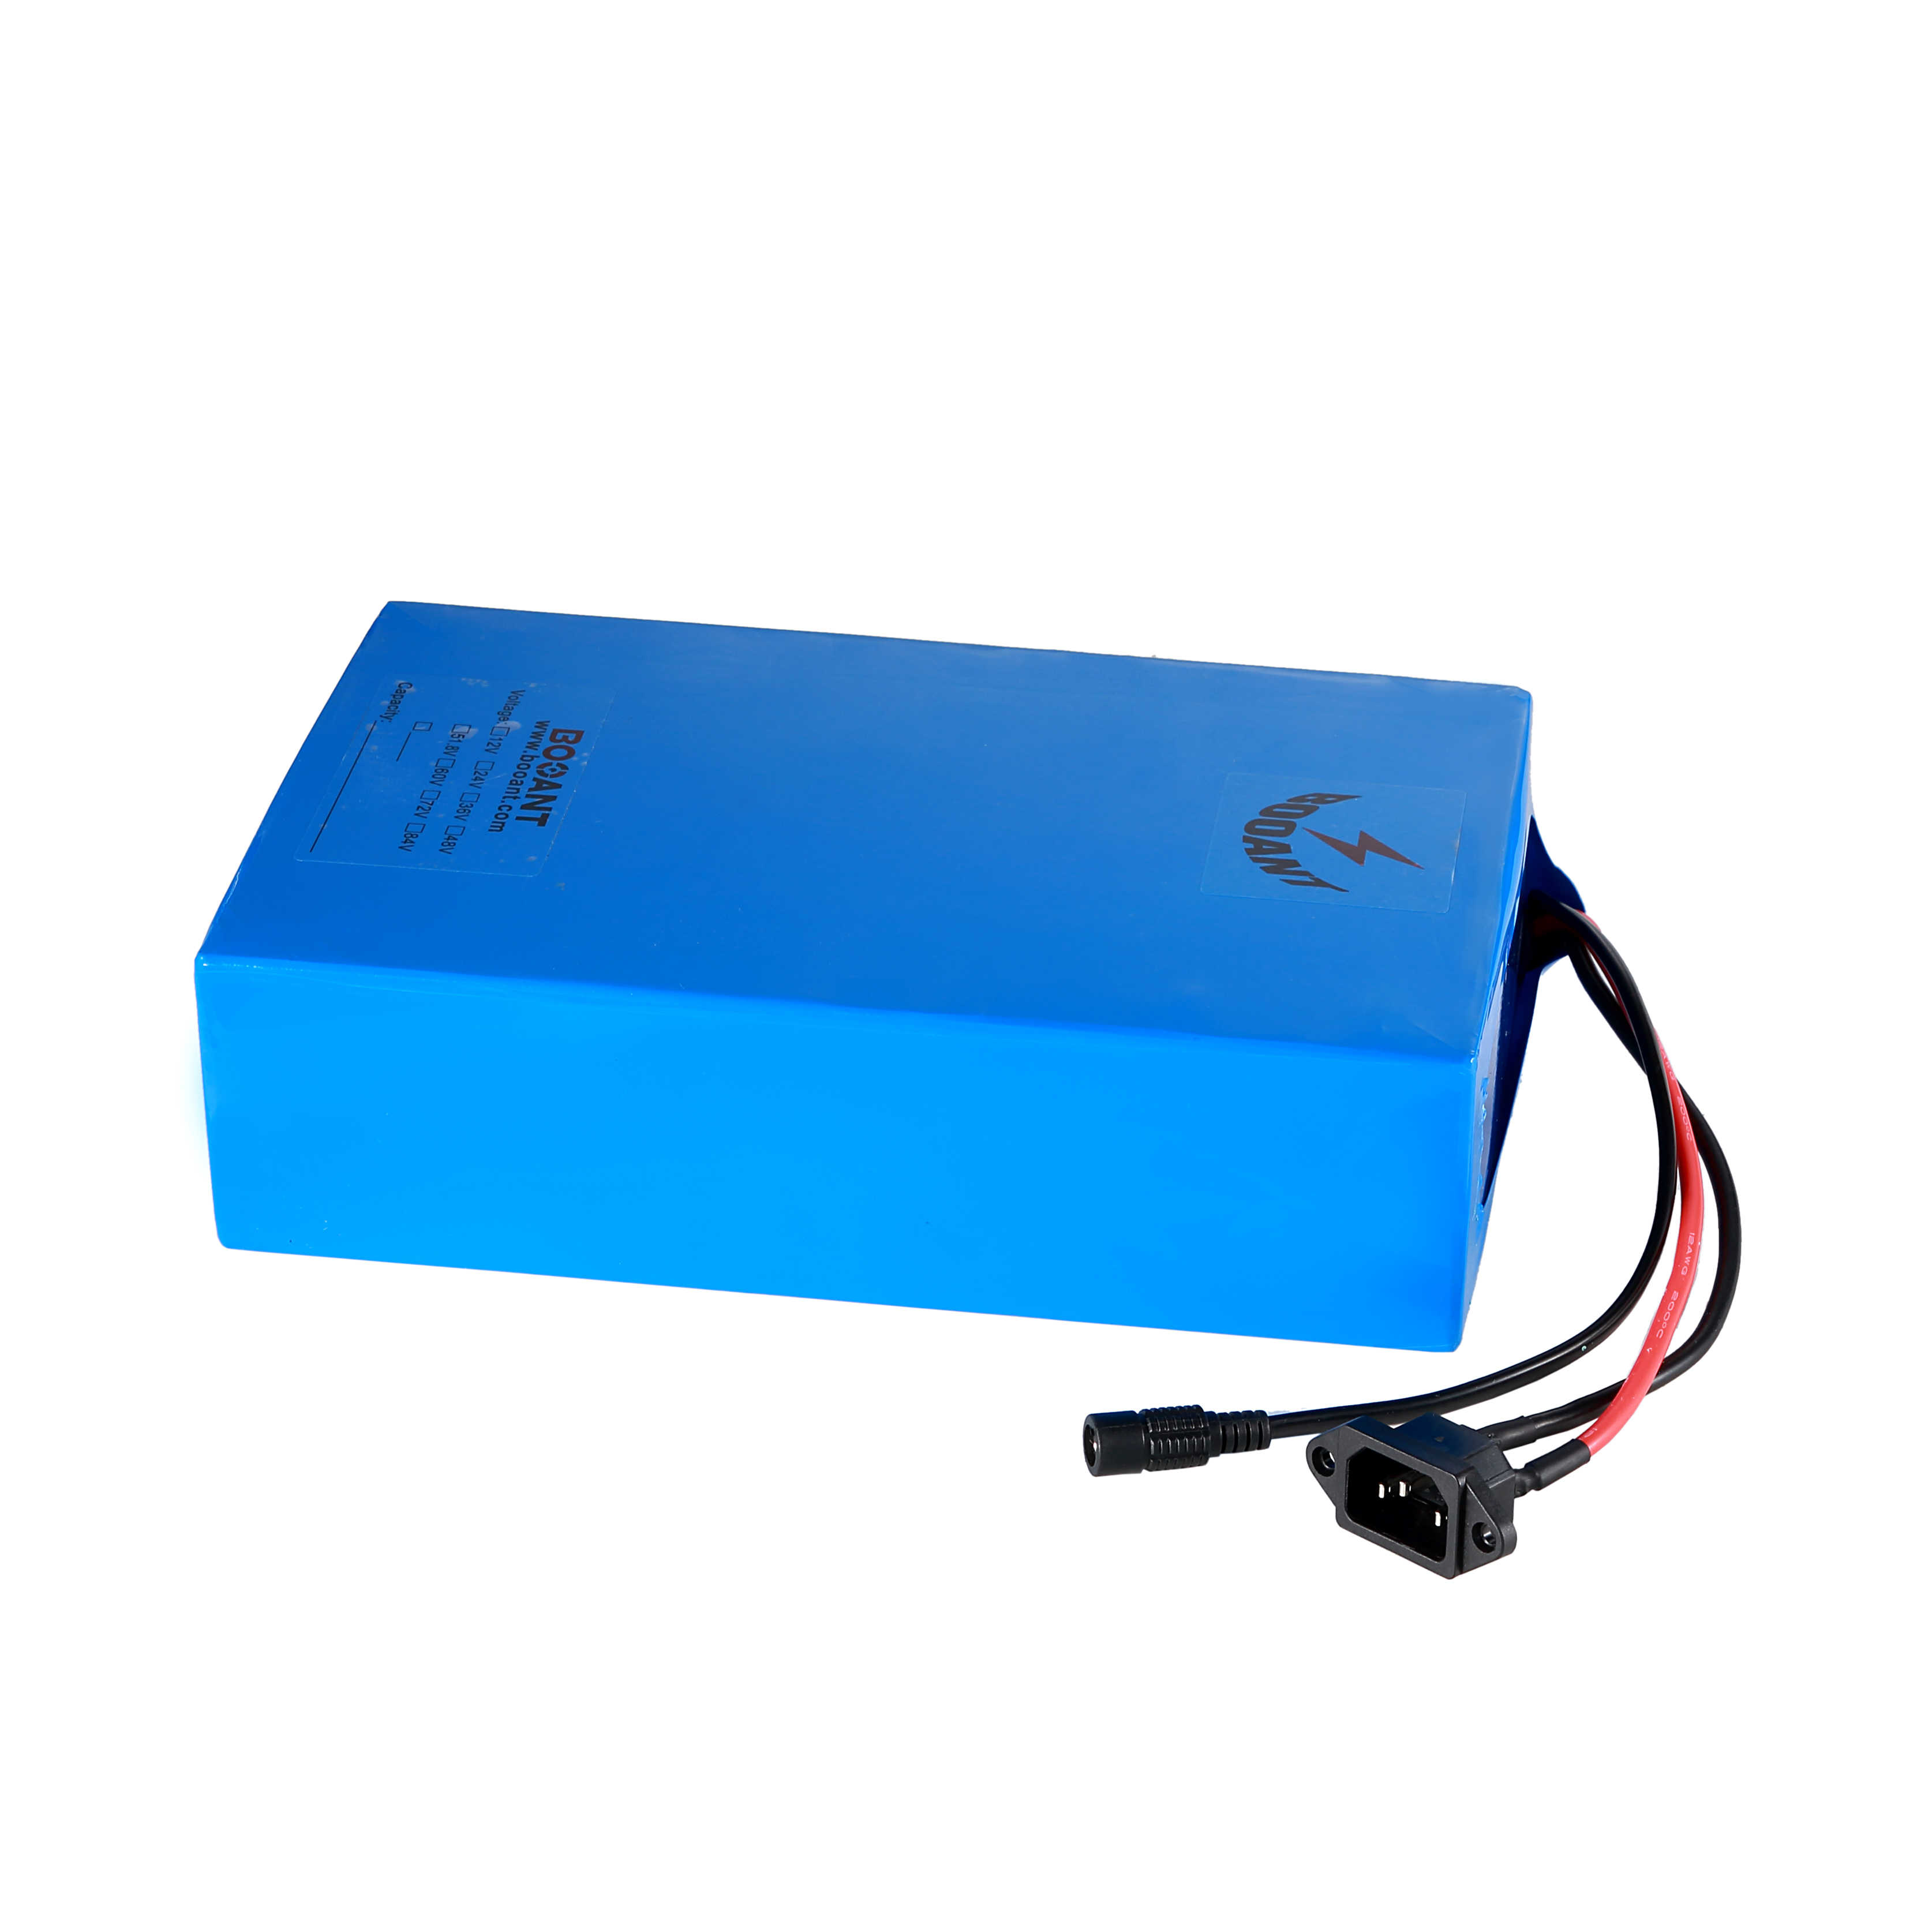 48V 20Ah 1000W electric bike battery for Panasonic 18650 13S 48V 750W 1500W rechargeable lithium battery built in 50Amp BMS